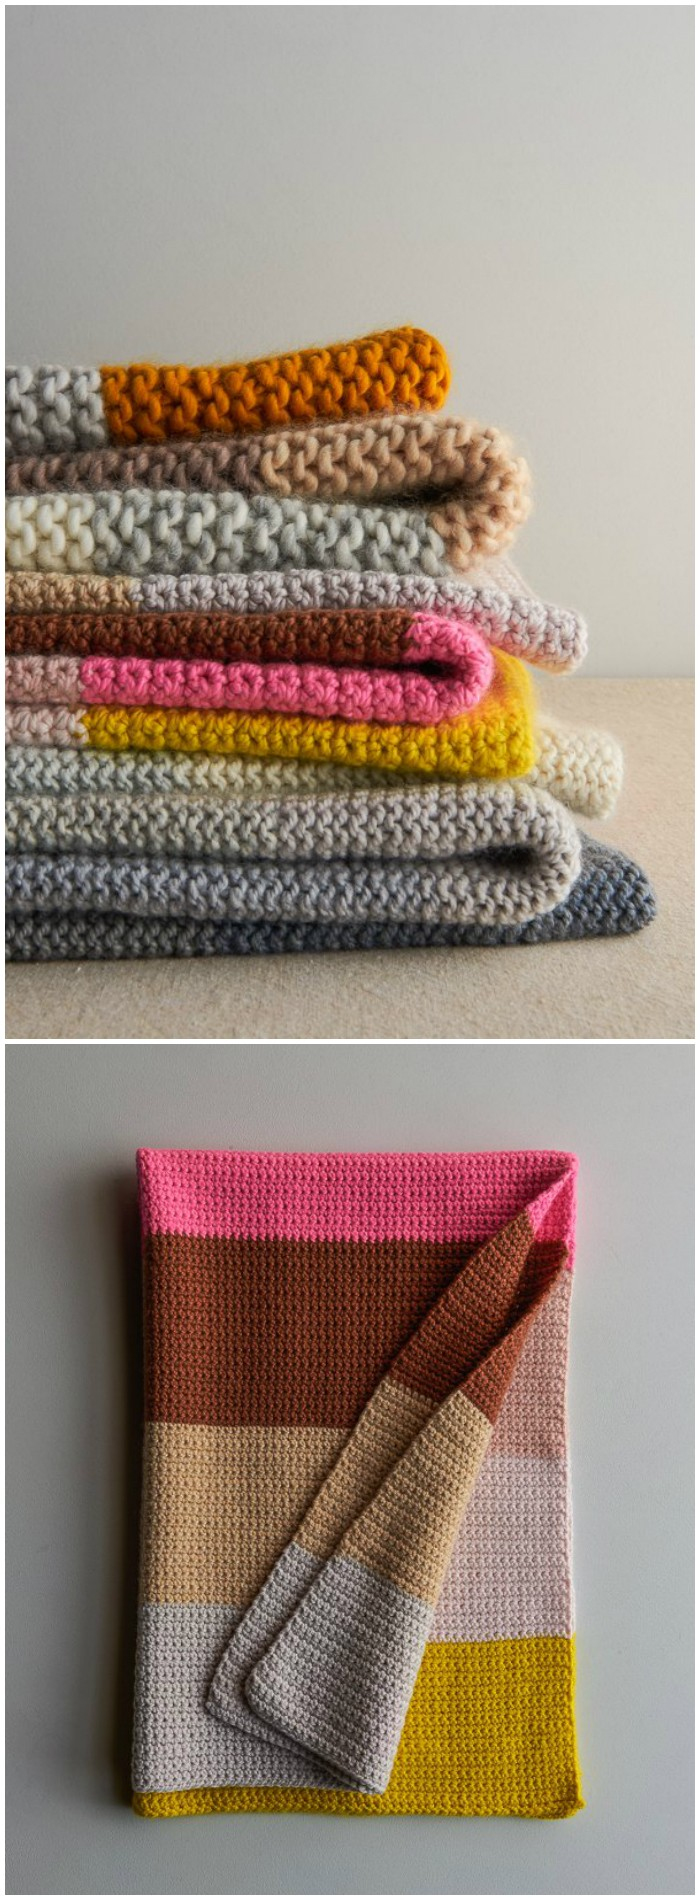 Super Easy Blankets in New Colors